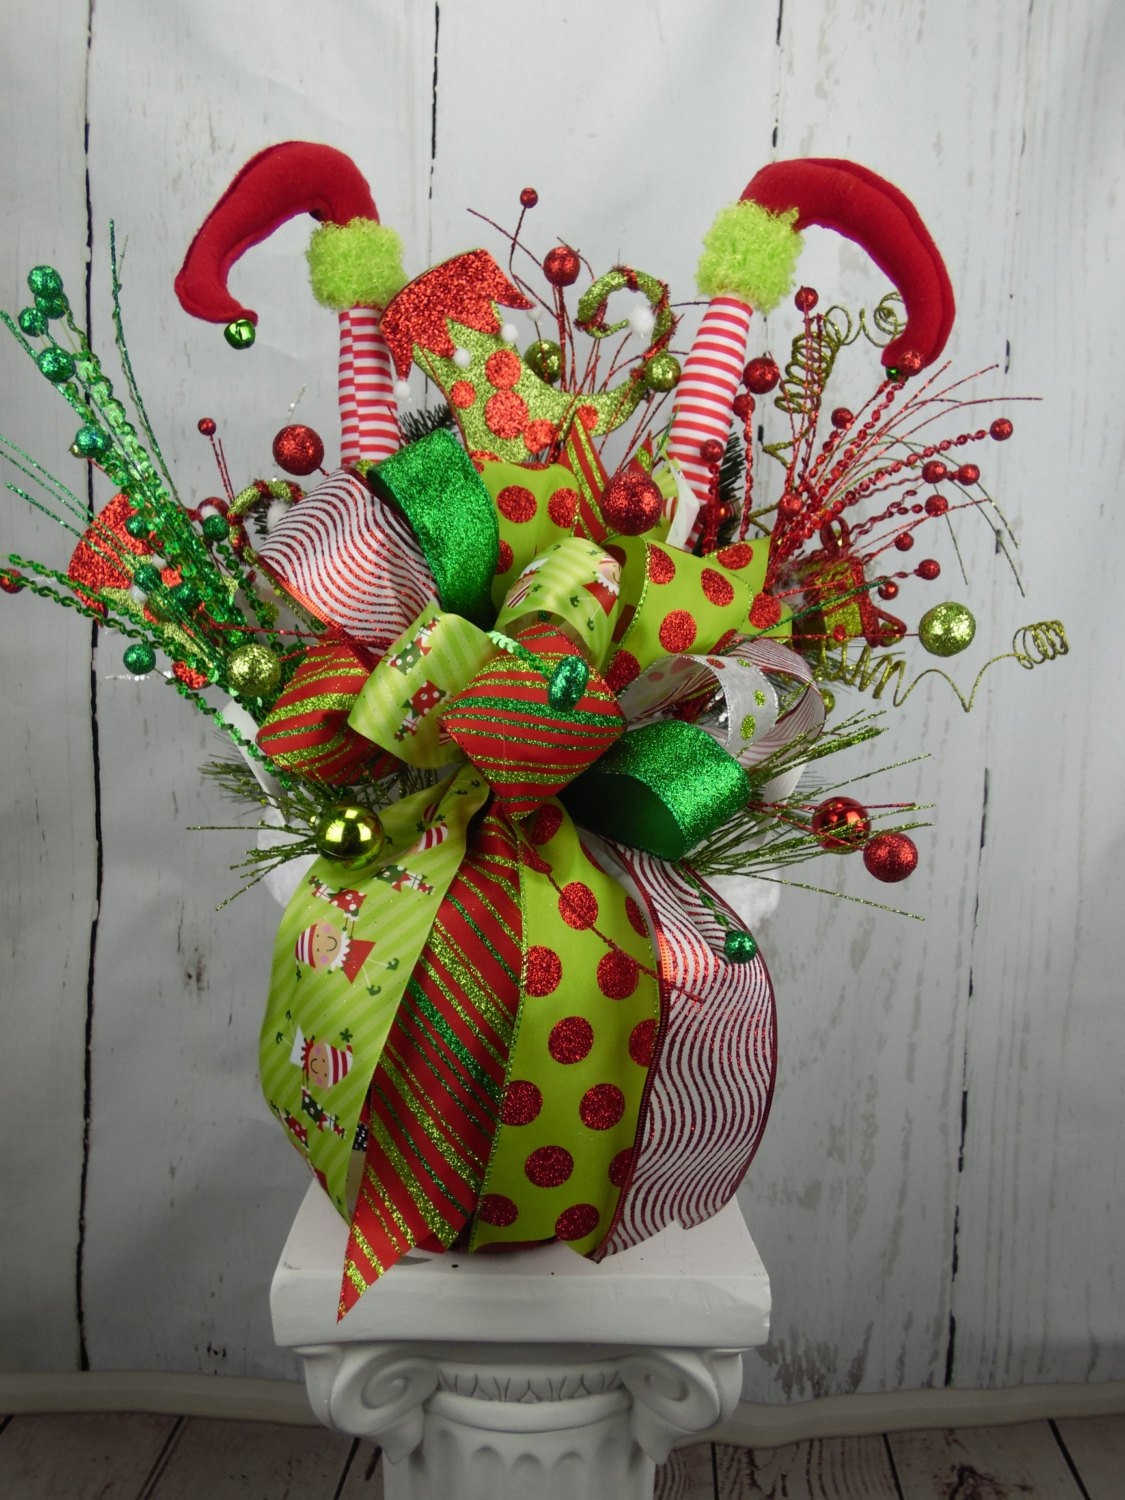 Elf Christmas Decorations Unique Elf Centerpiece Christmas Centerpiece Holiday Centerpiece Of Brilliant 42 Images Elf Christmas Decorations